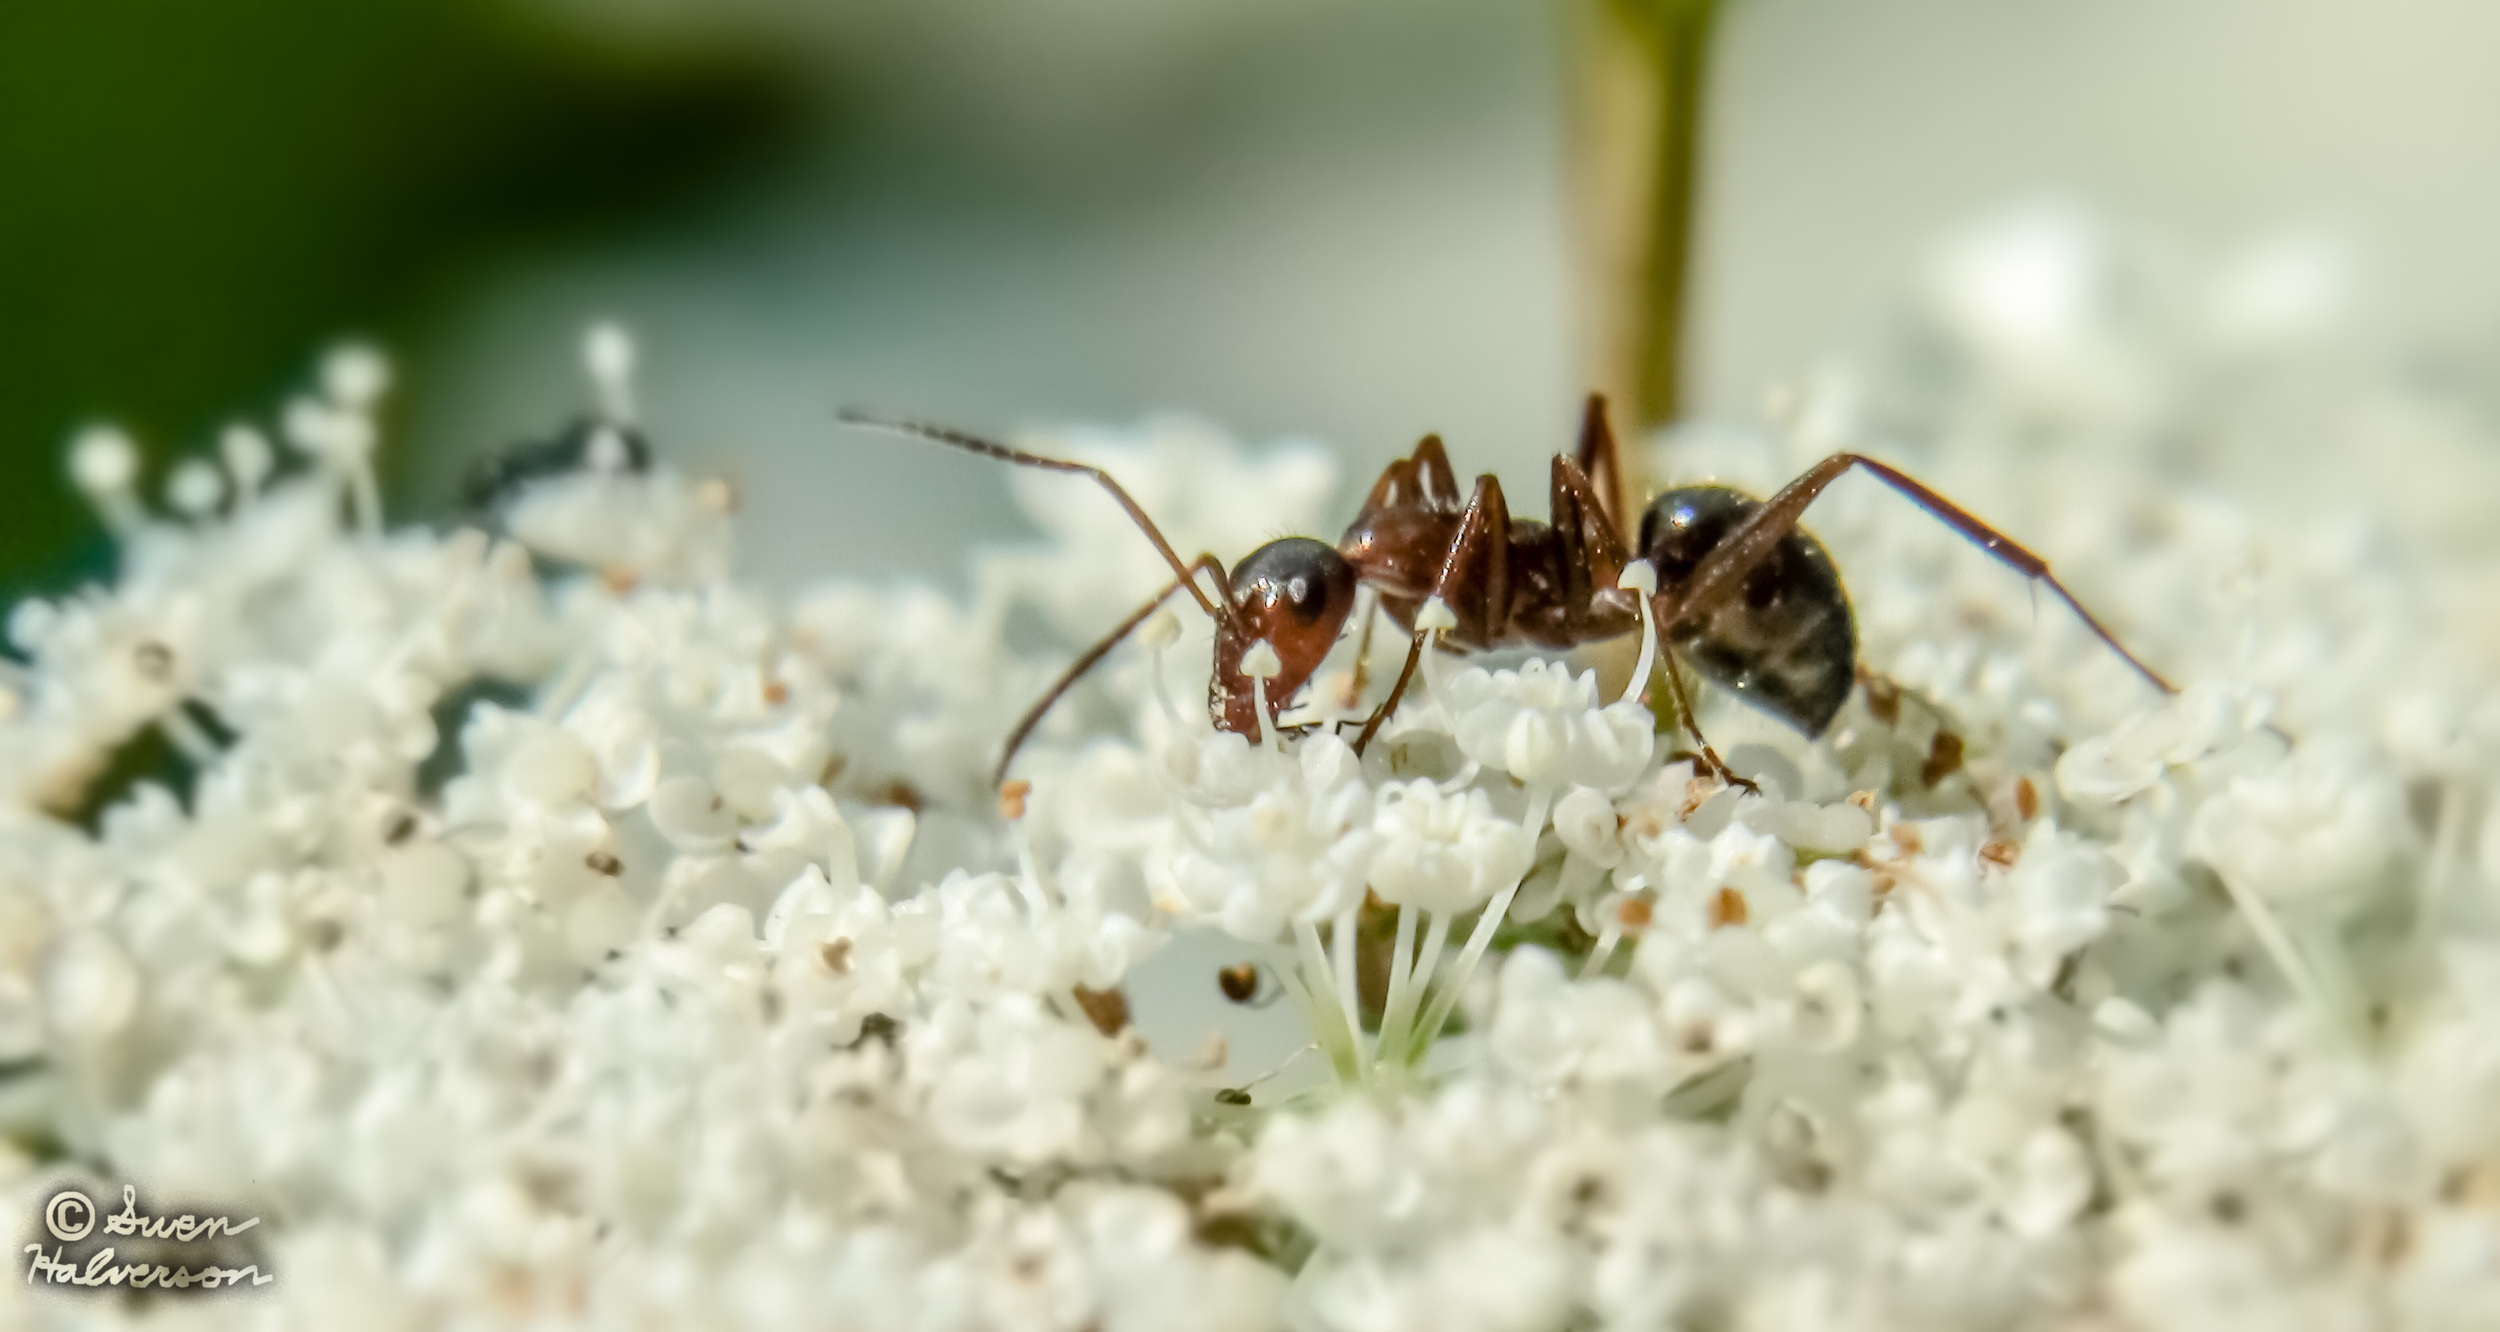 Theme: Ant  <br>Title: Ant 1